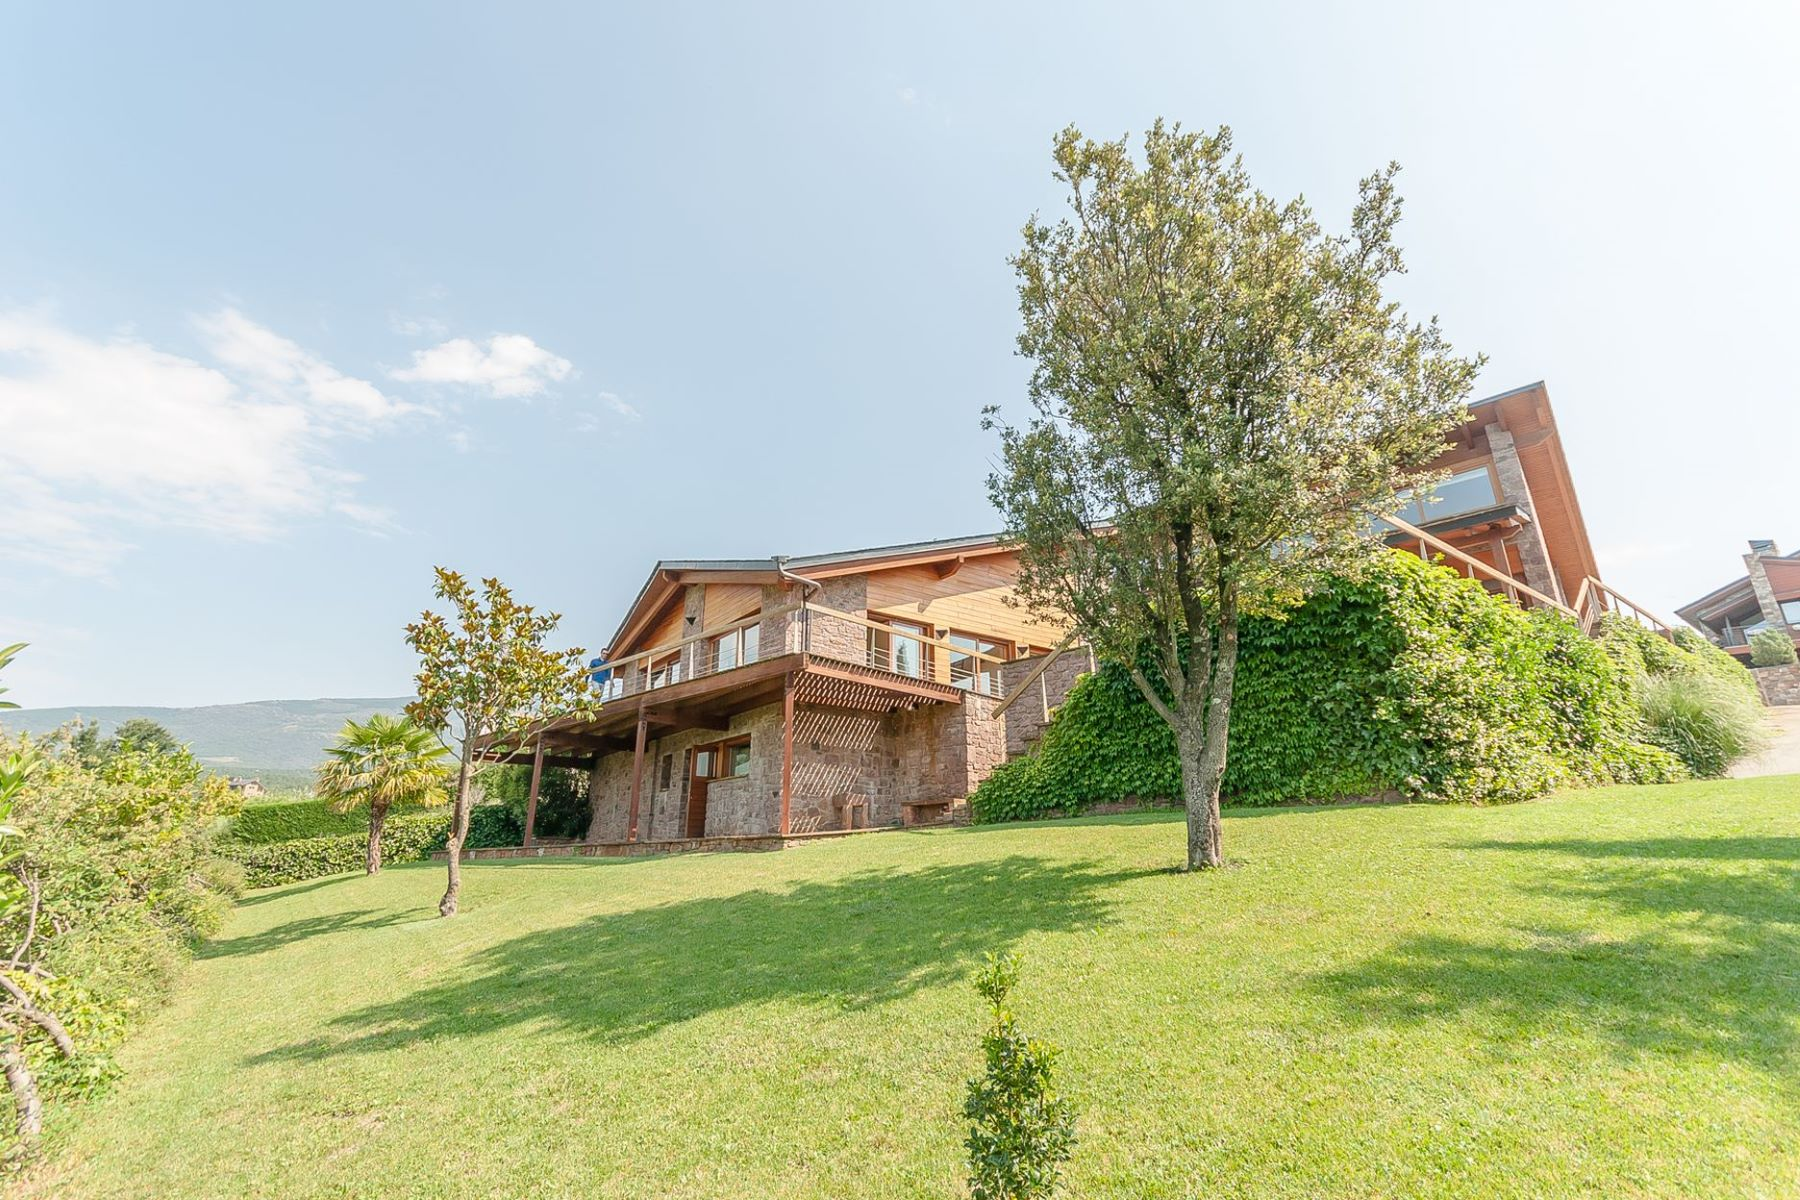 Single Family Home for Sale at Chalet-Tower for sale in Aravell Other Spain, Other Areas In Spain, Spain